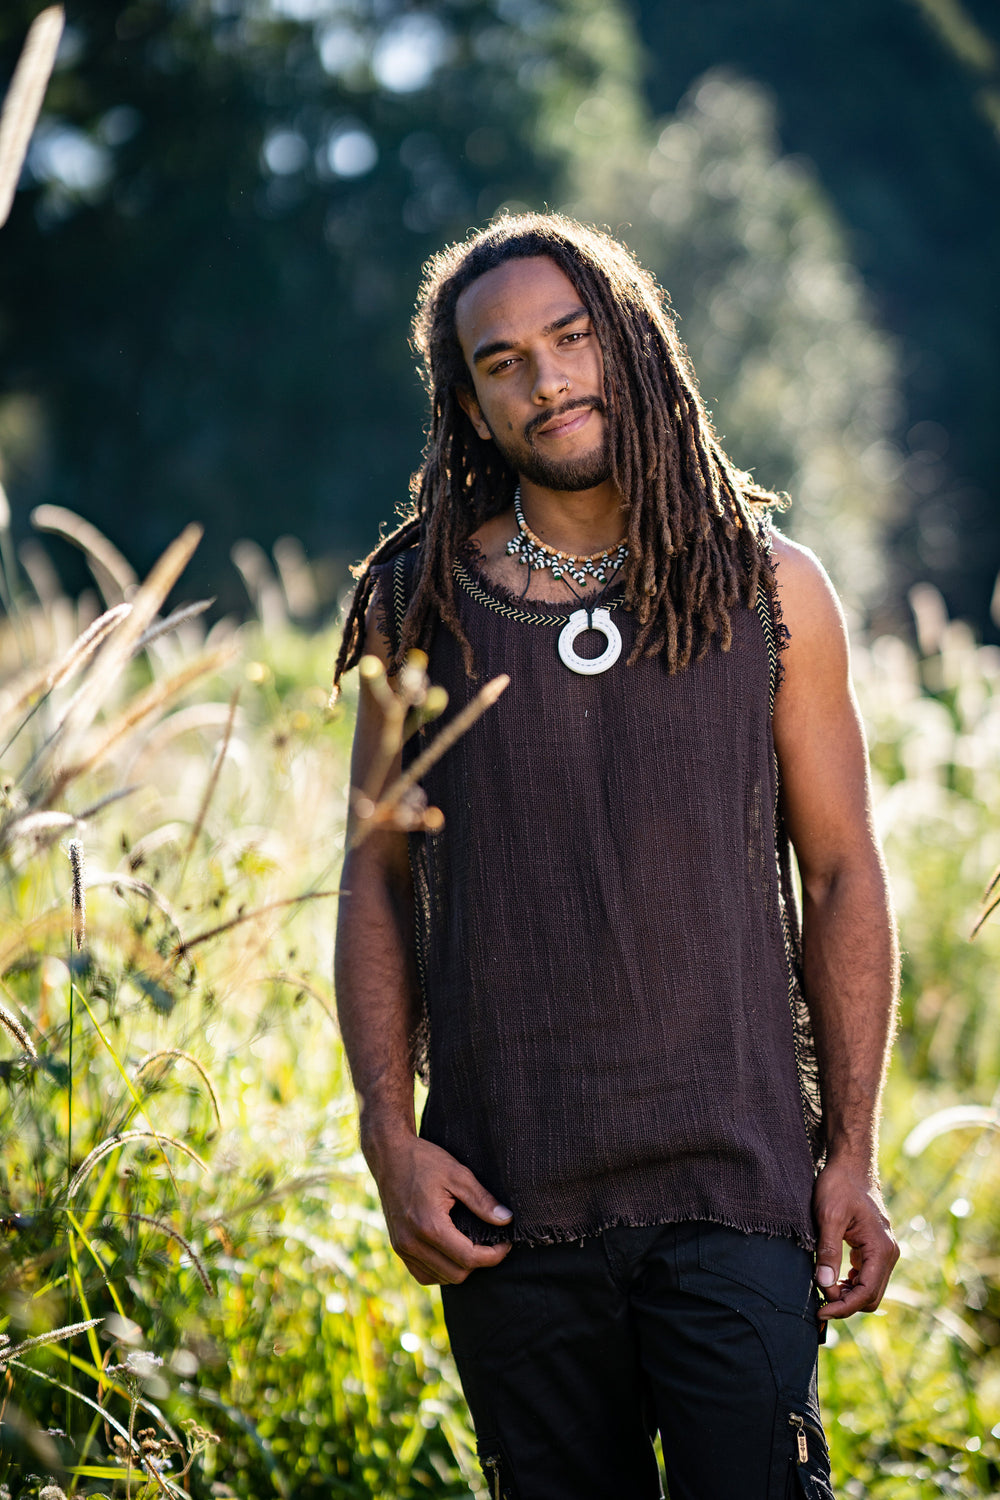 Mens Sleeveless Tank Top DHATU Cotton Shirt Slashed Open Sides Brown Semi See Through Breathable Tribal Gypsy Alternative Festival AJJAYA